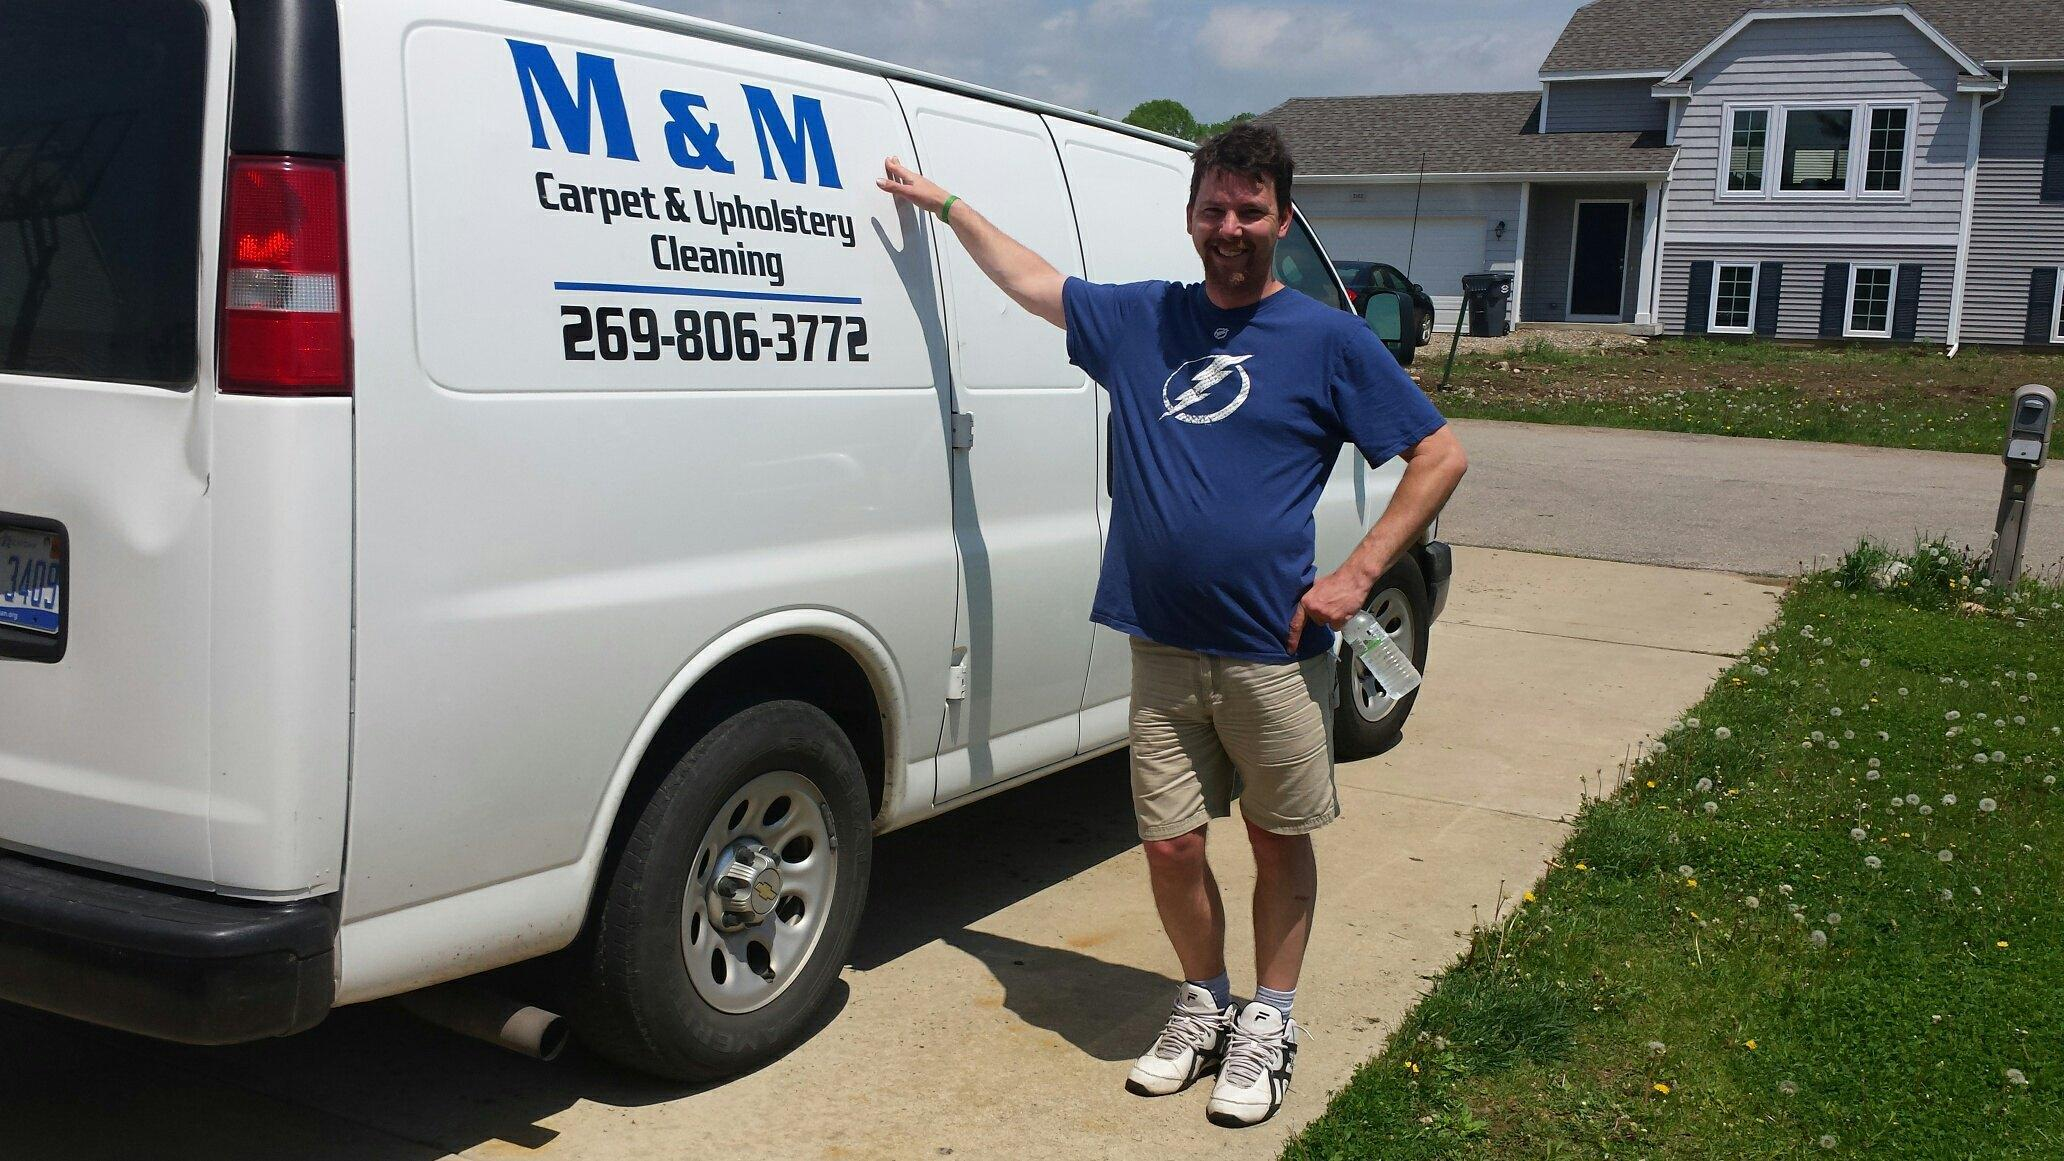 M&M Carpet And Upholstery Cleaning